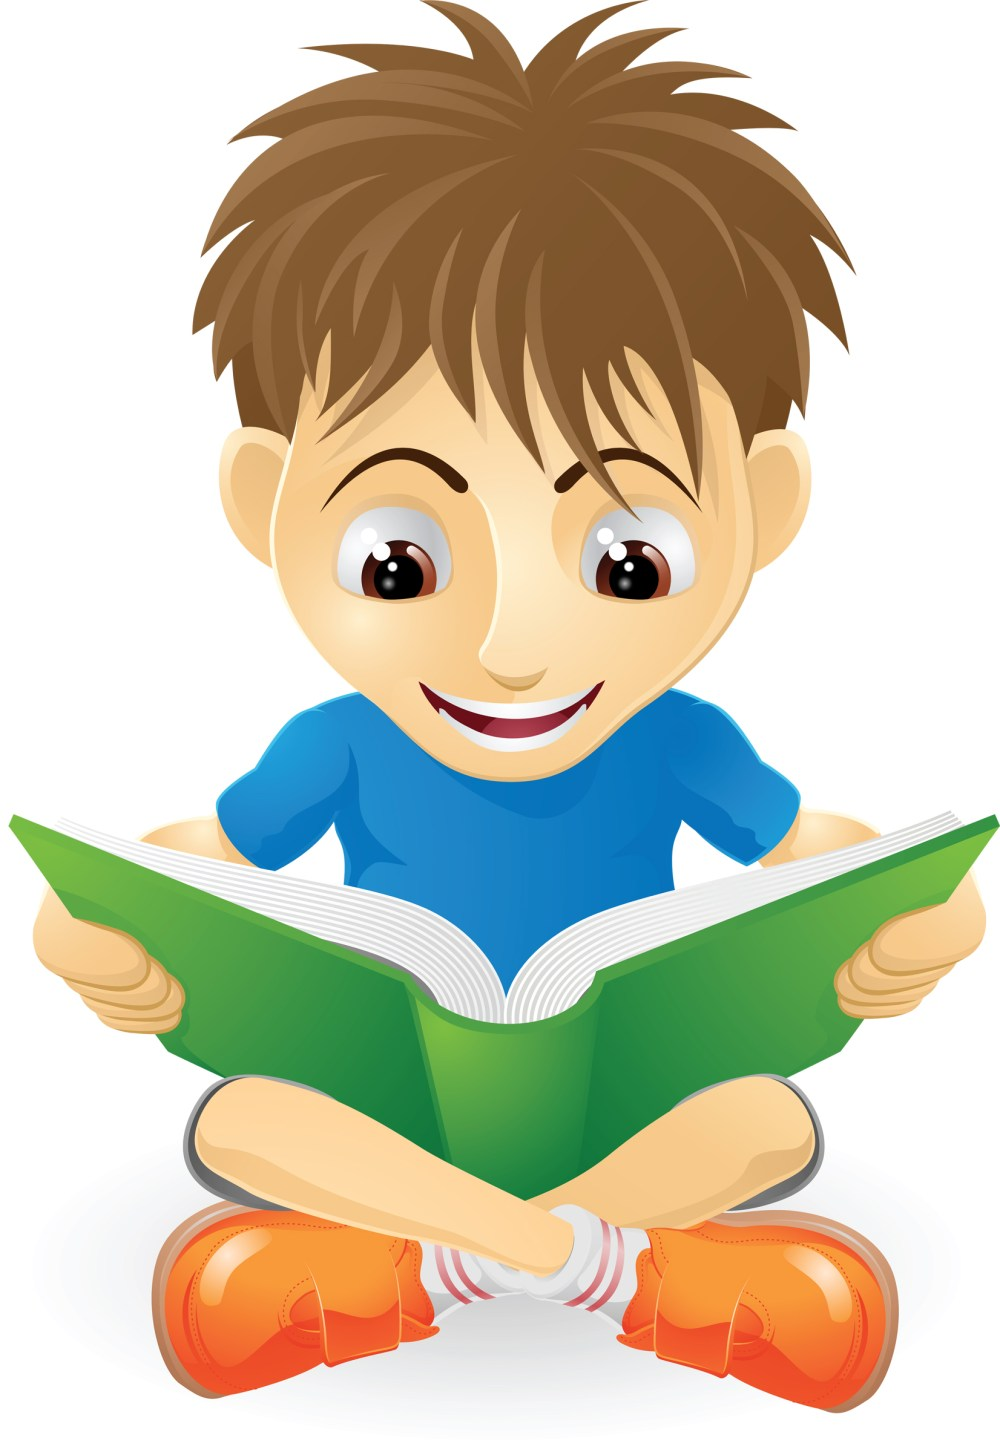 medium resolution of child thinking child reading clipart 7 wikiclipart